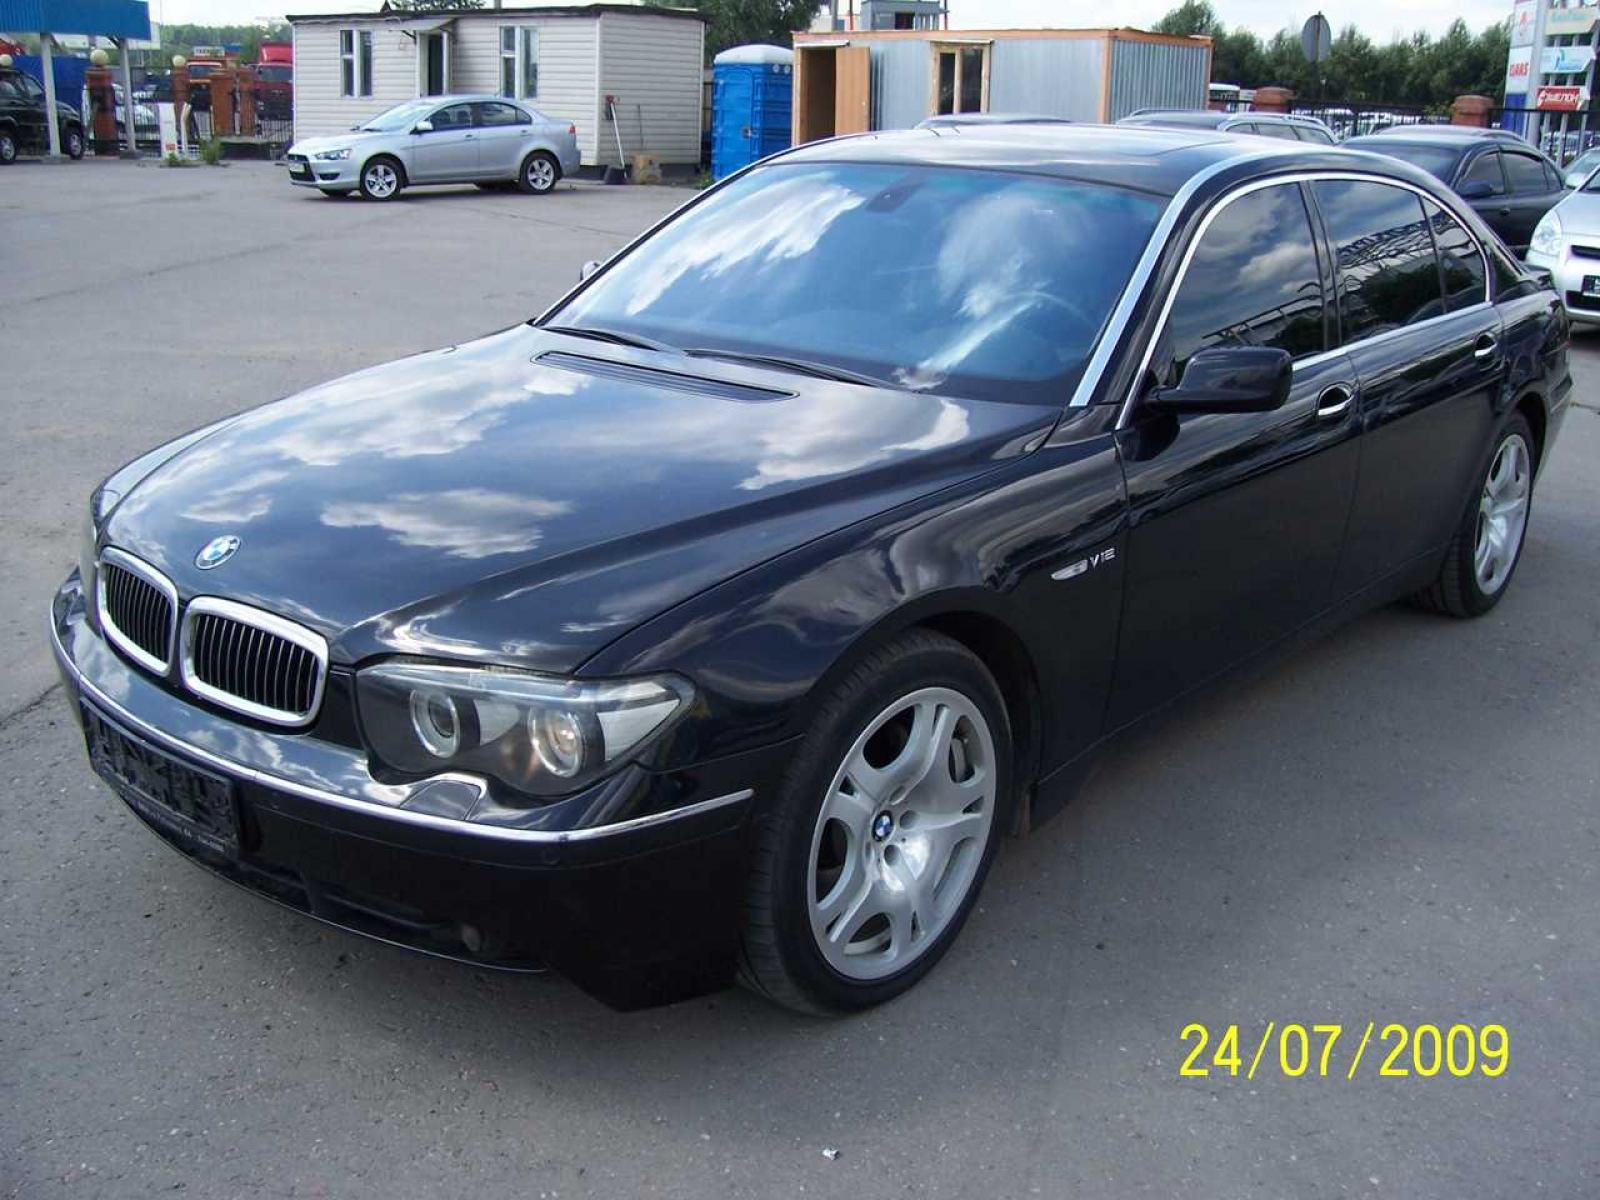 2004 bmw 7 series information and photos zomb drive. Black Bedroom Furniture Sets. Home Design Ideas